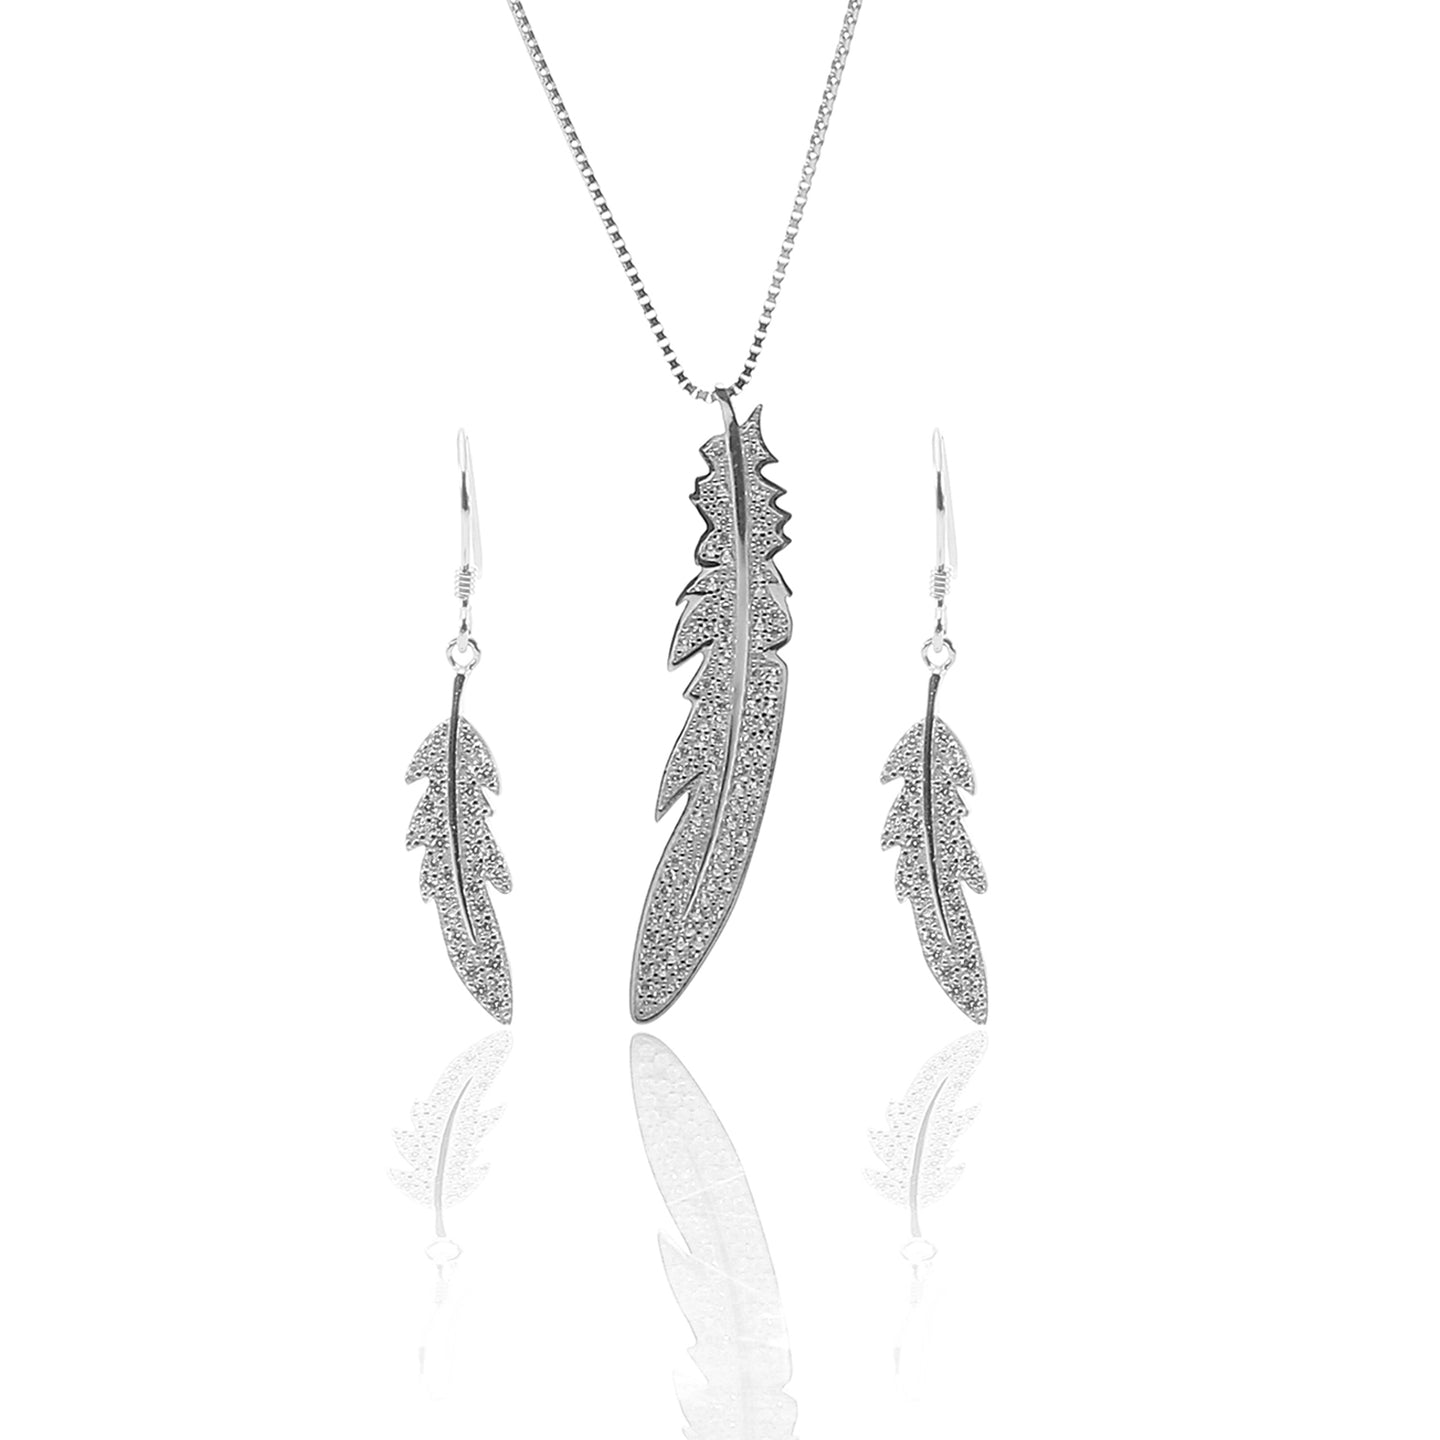 Feather Pendant Necklace and Earring Set - ARJW1015RD - ARCADIO LIFESTYLE